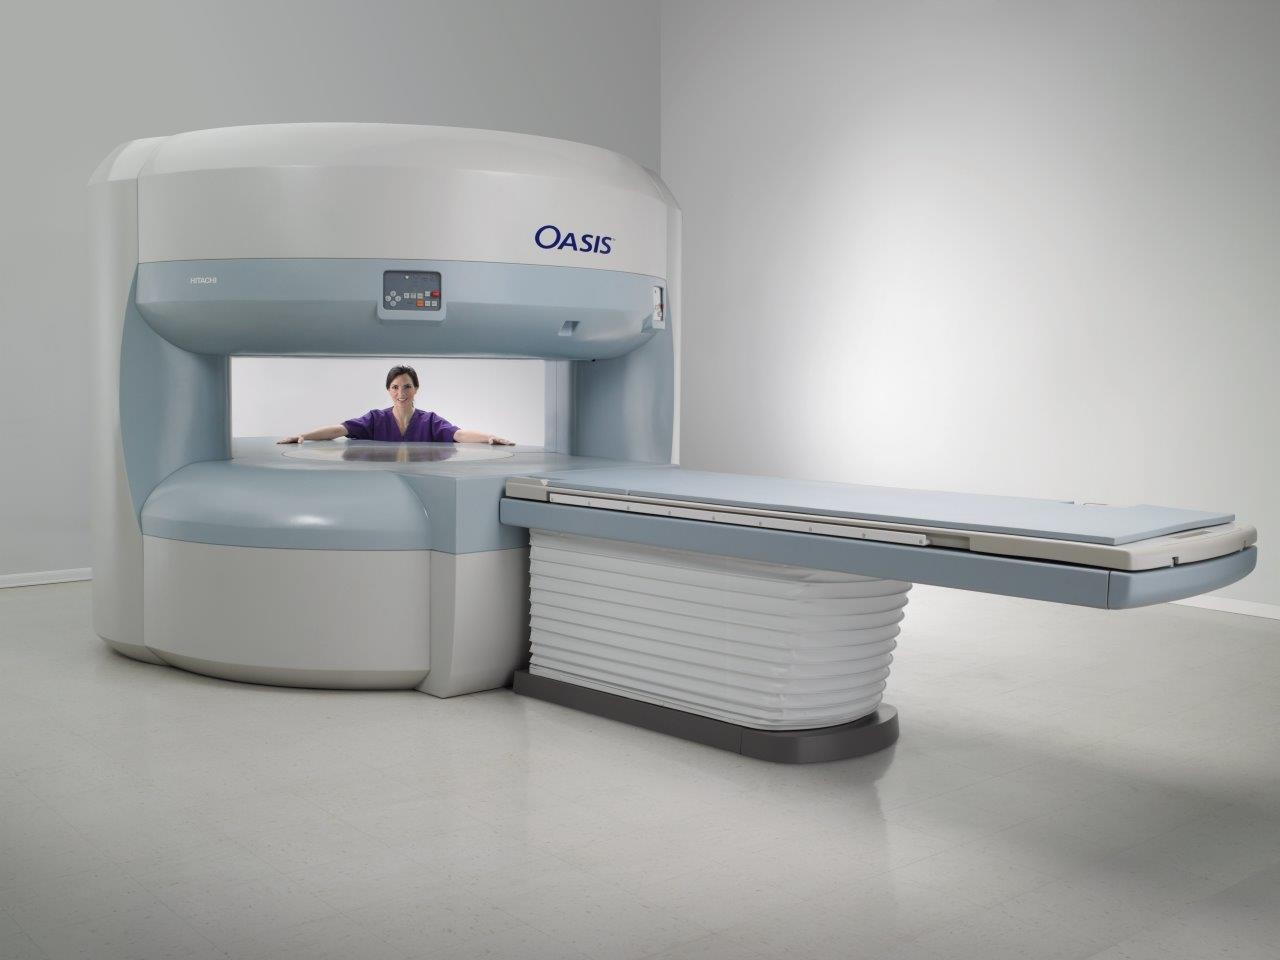 The Oasis MRI Has Arrived!